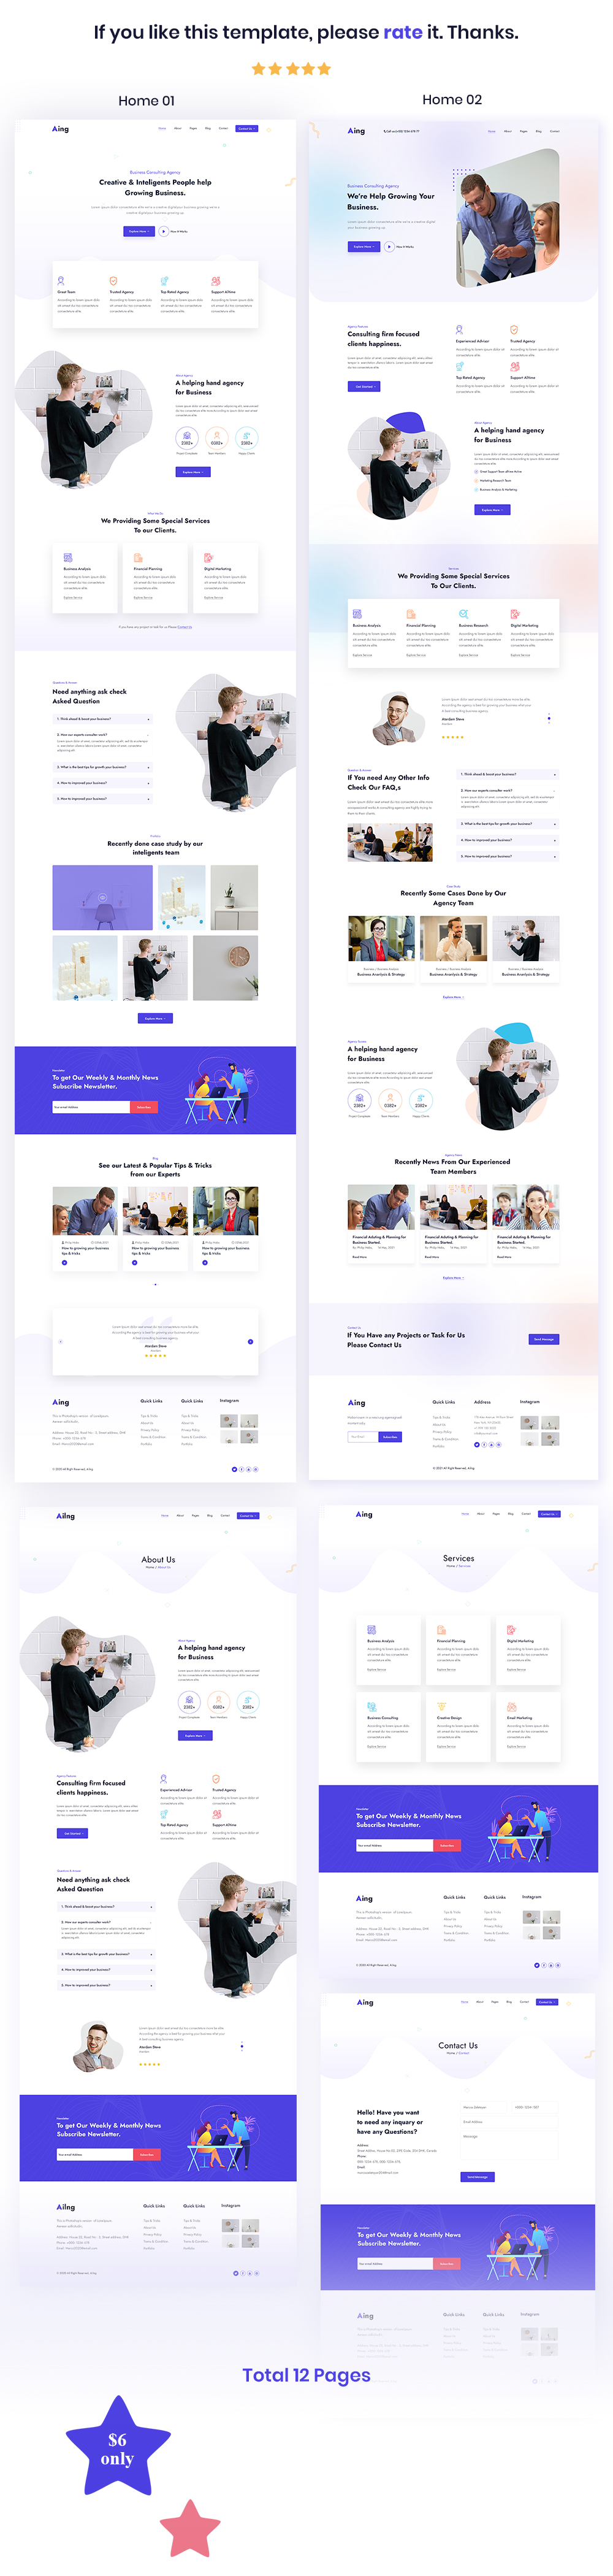 Ailng - Creative Consulting & Business Agency HTML Template - 1